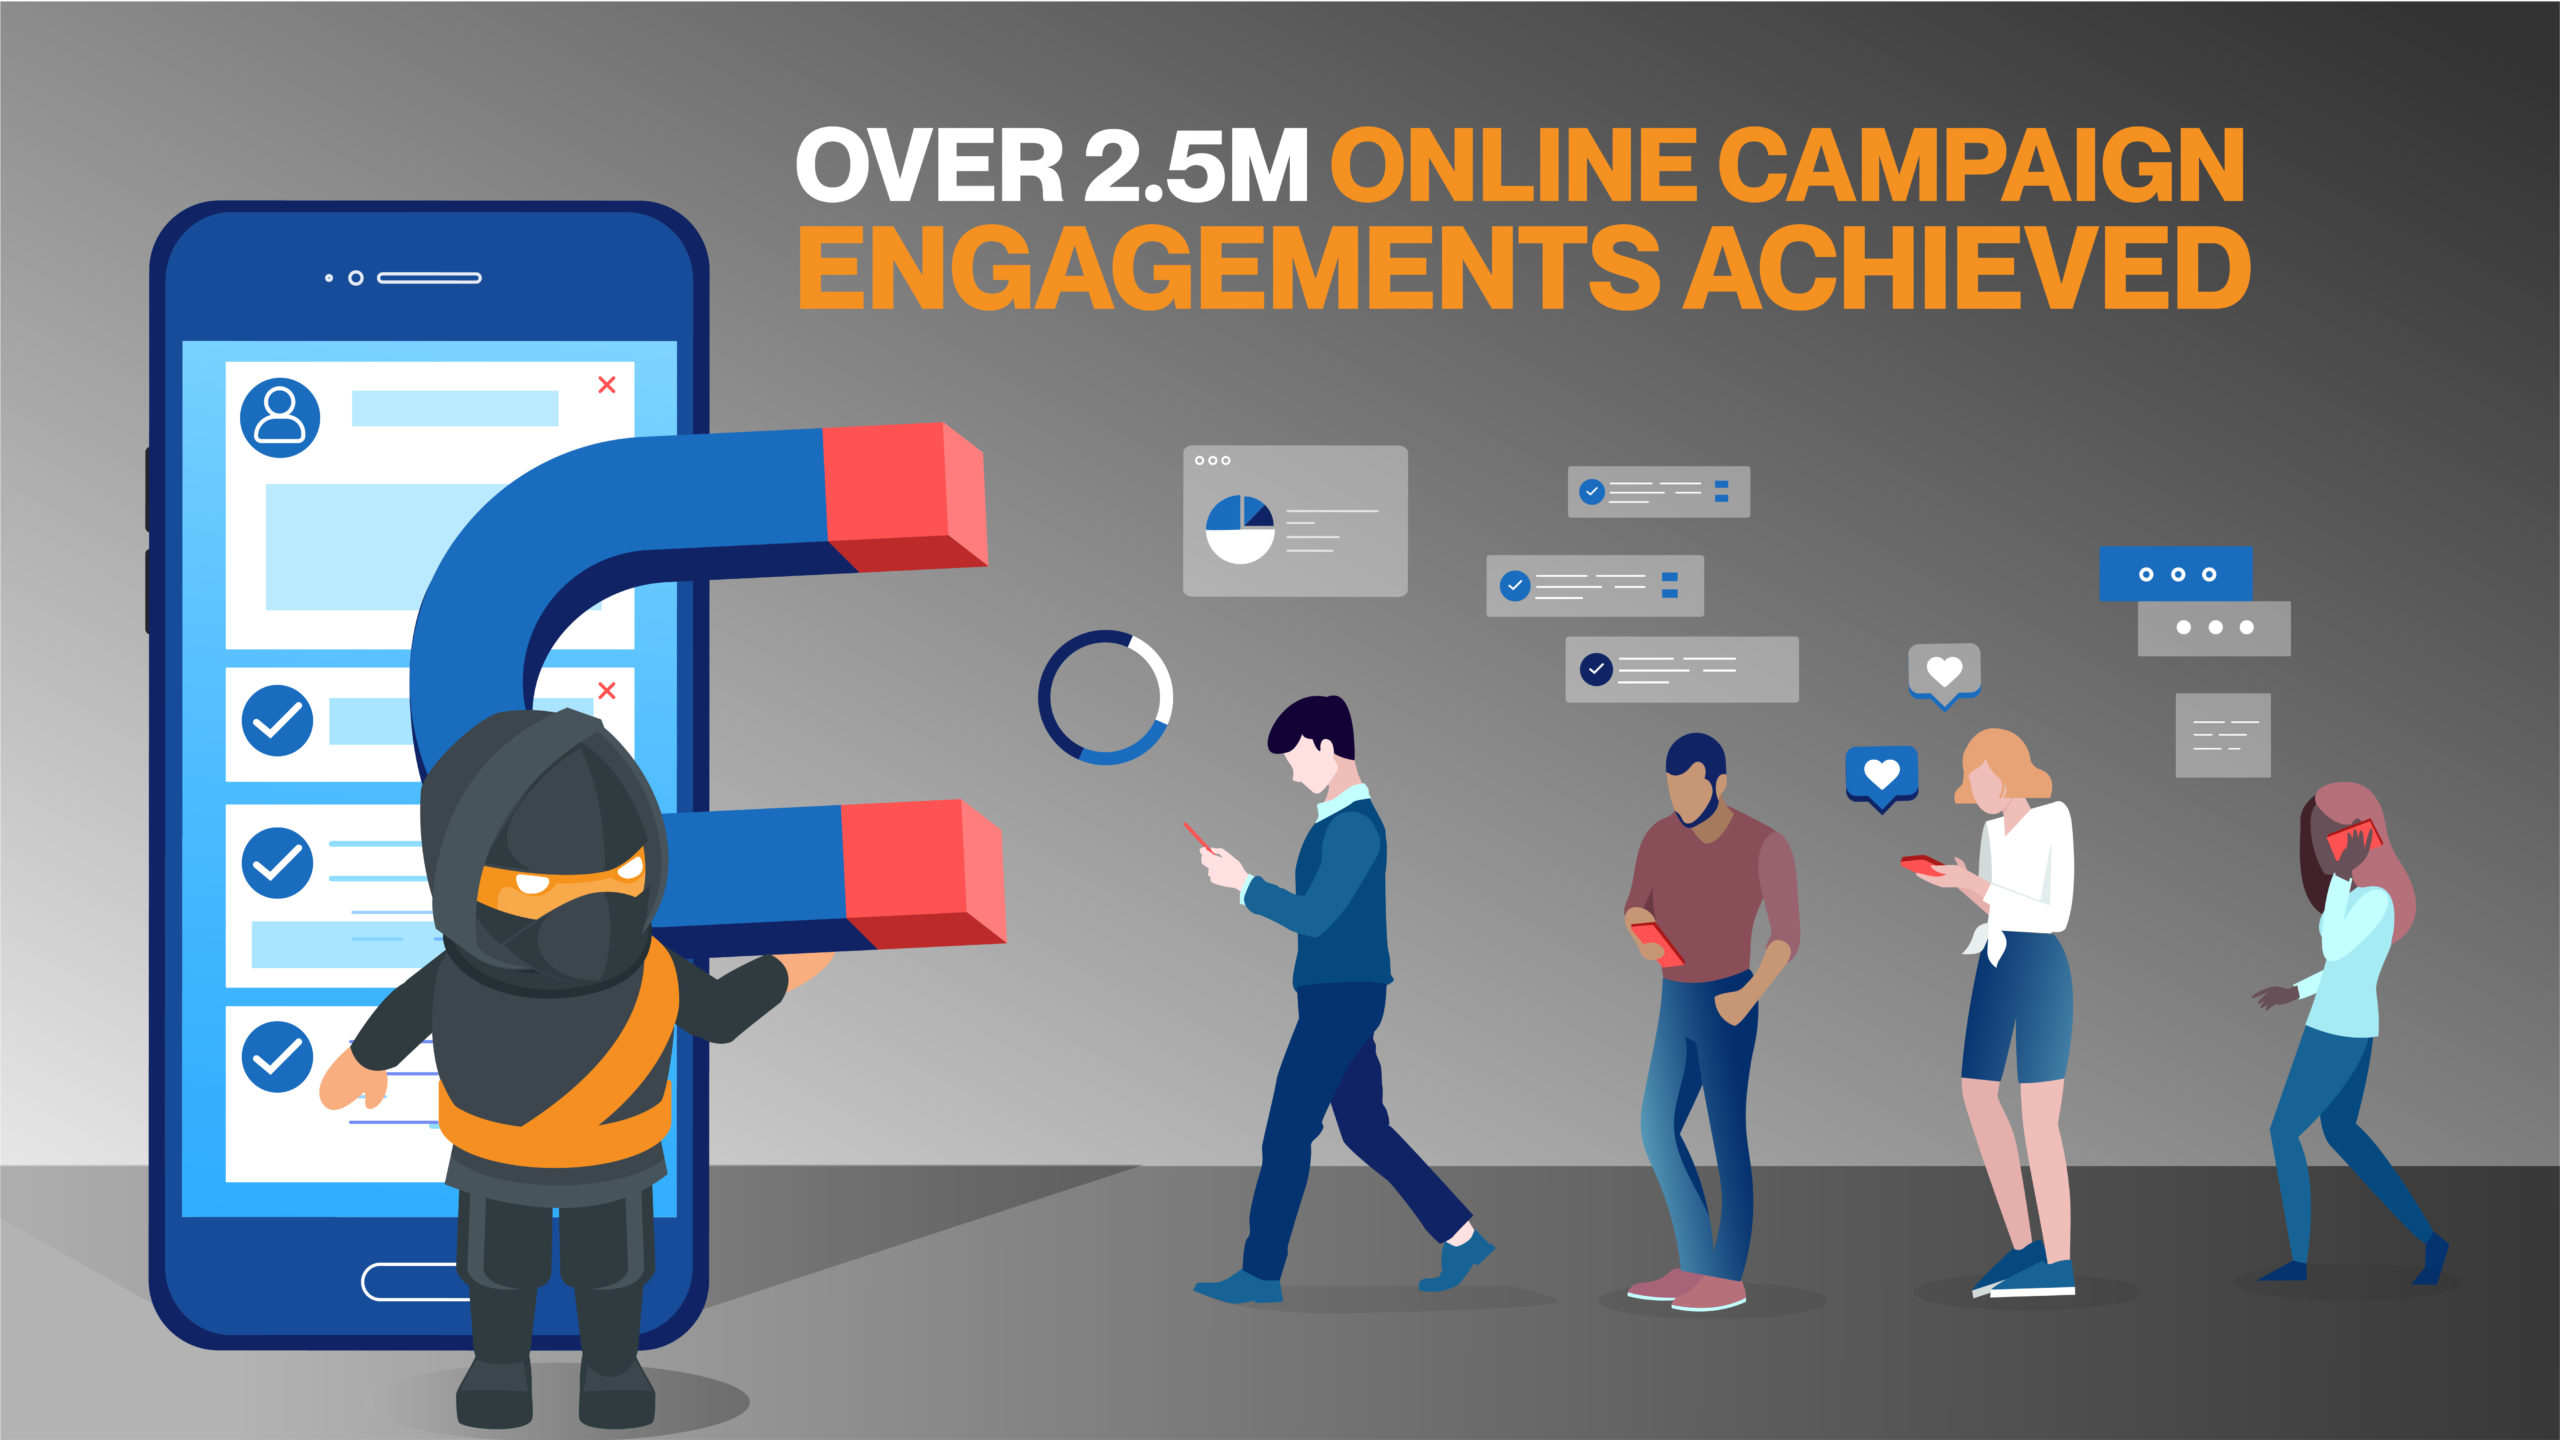 Digital Kungfu achieves 2.5 million online campaign engagements for technology clients